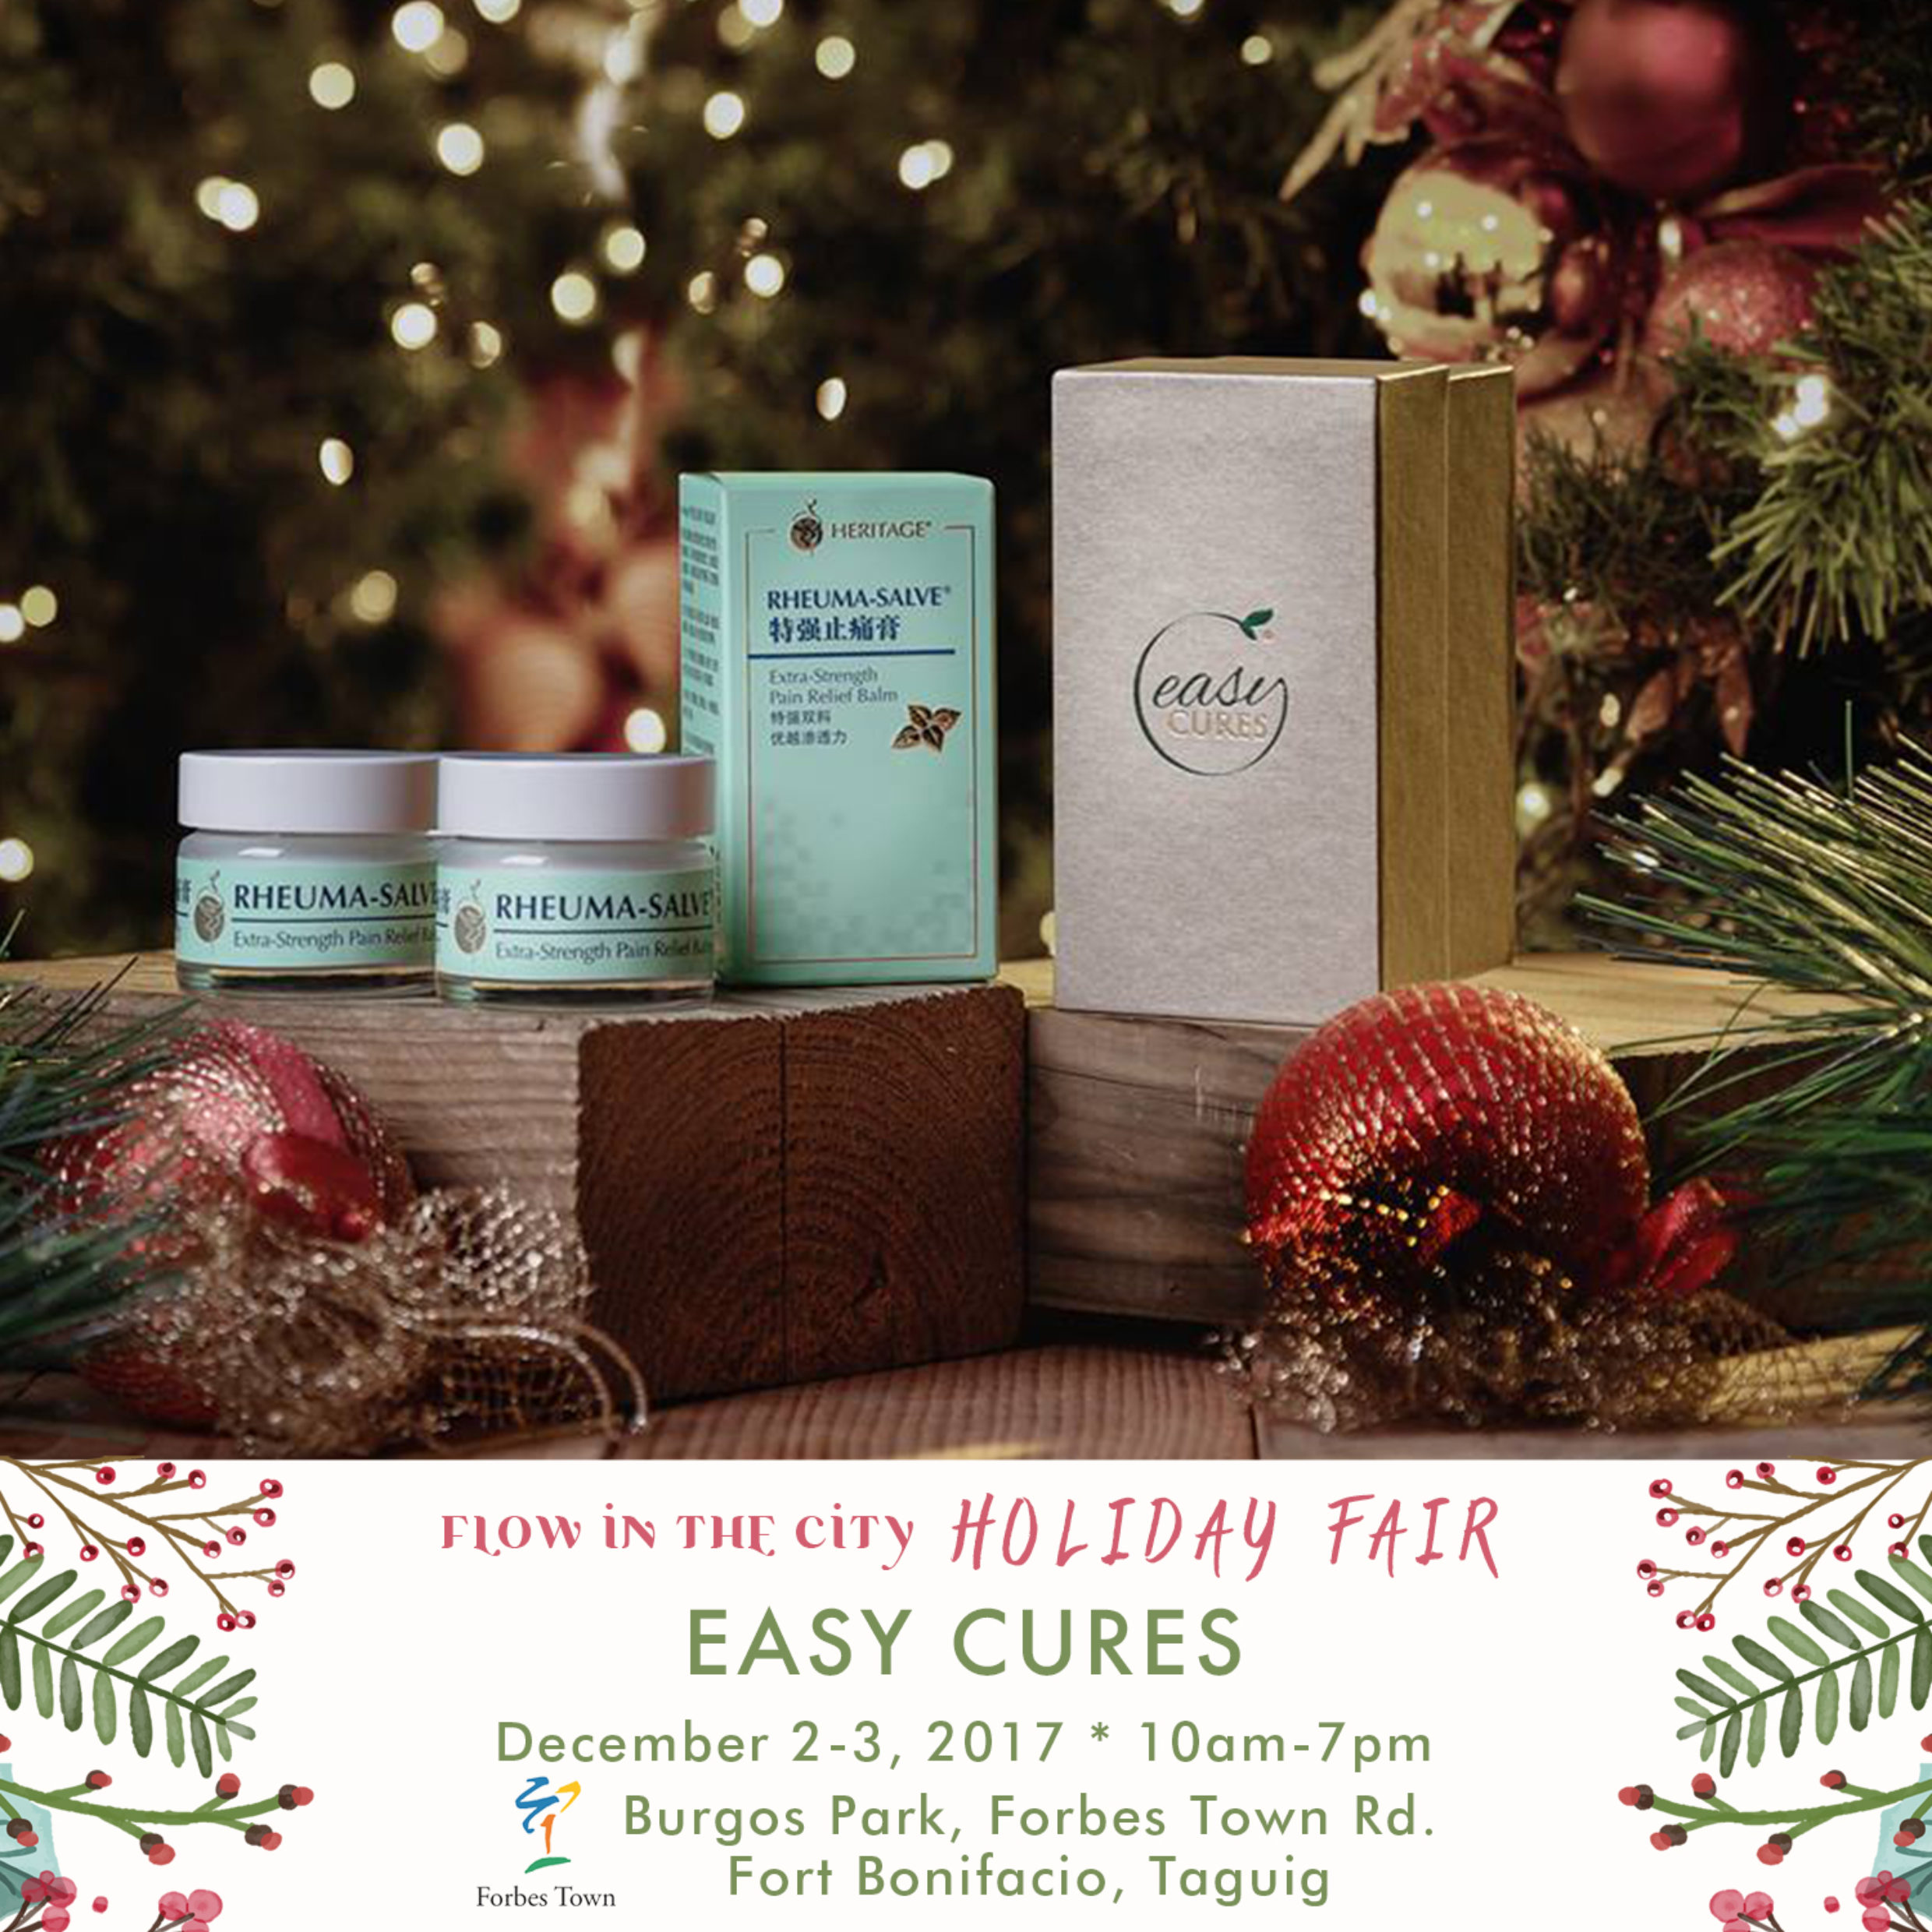 Healthy Gifts From Easy Cures At Flow In The City Holiday Fair